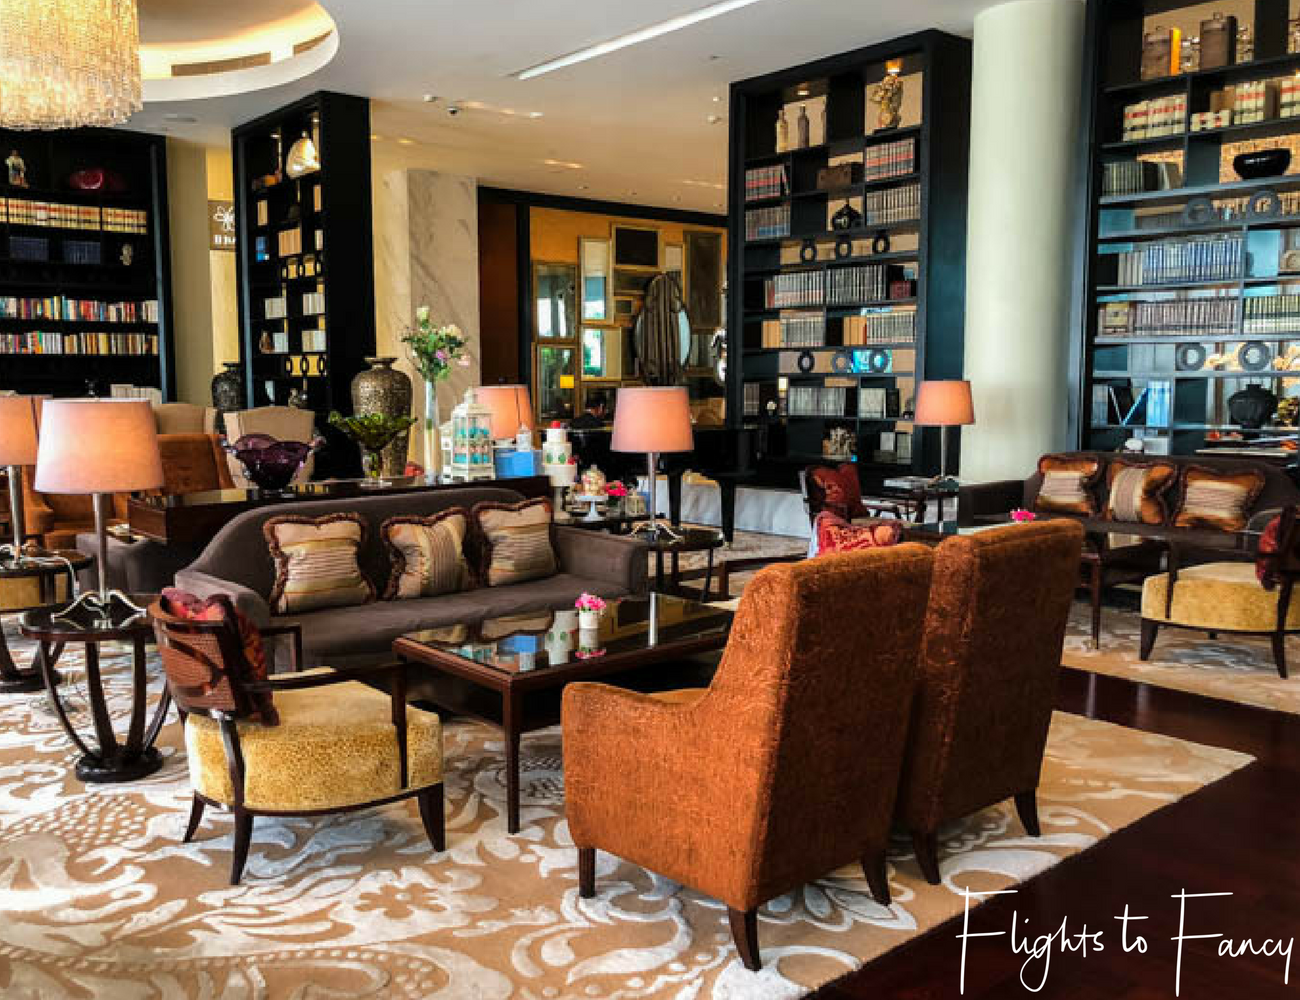 Flights To Fancy at Raffles Manila - The Writers Bar in one of the best hotels in Makati